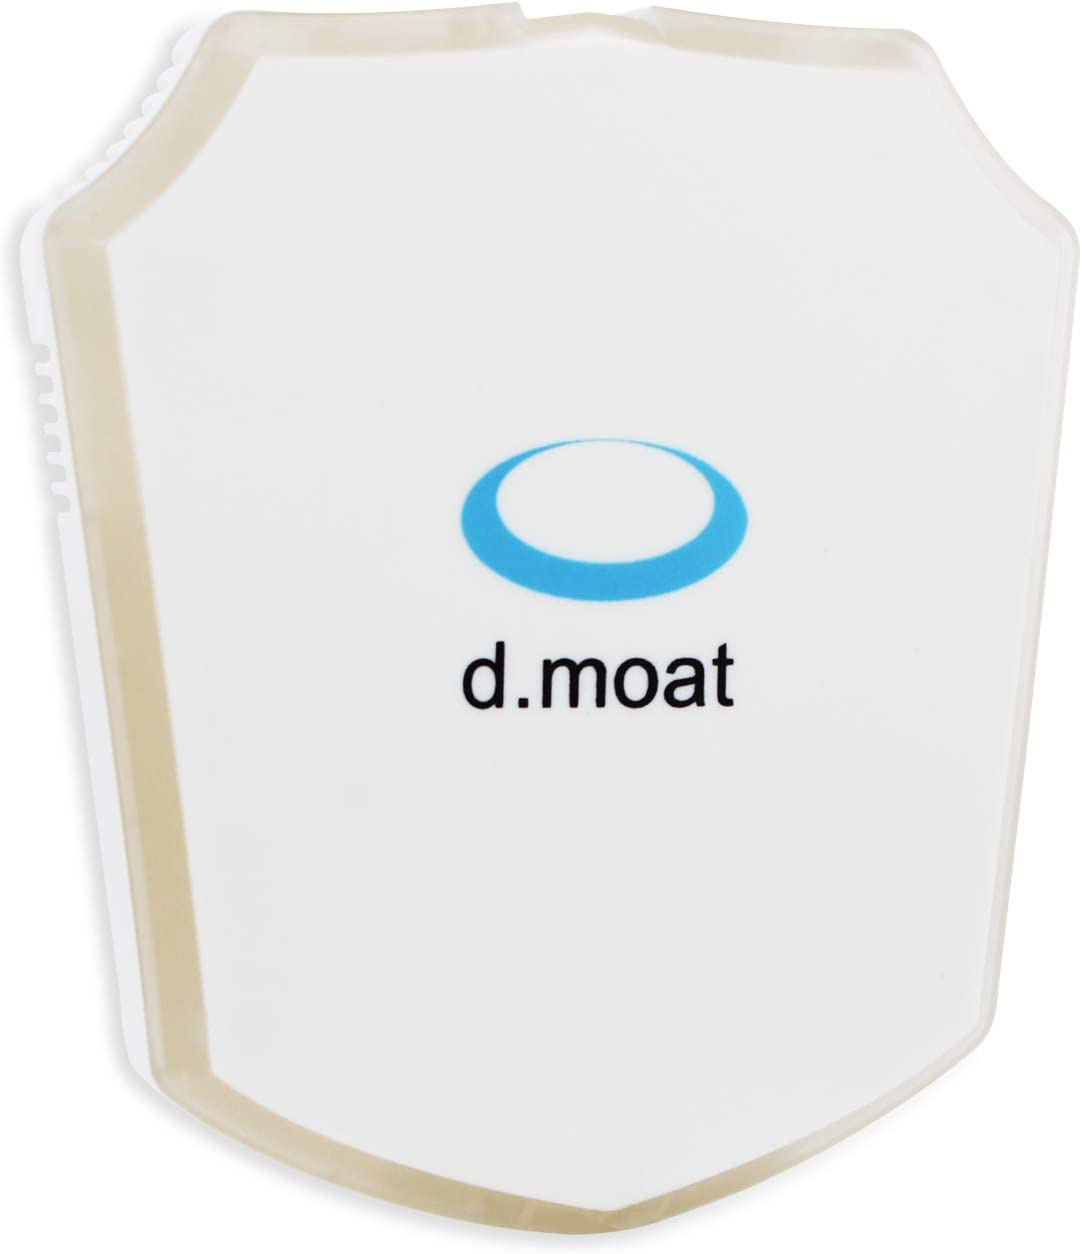 d.moat Home Network Security   Connects to Your Router   24x7 Protection Against Cyber Attacks   1GB Ethernet   Parental Controls   Alexa & Google Assistant Enabled   No Monthly Subscription